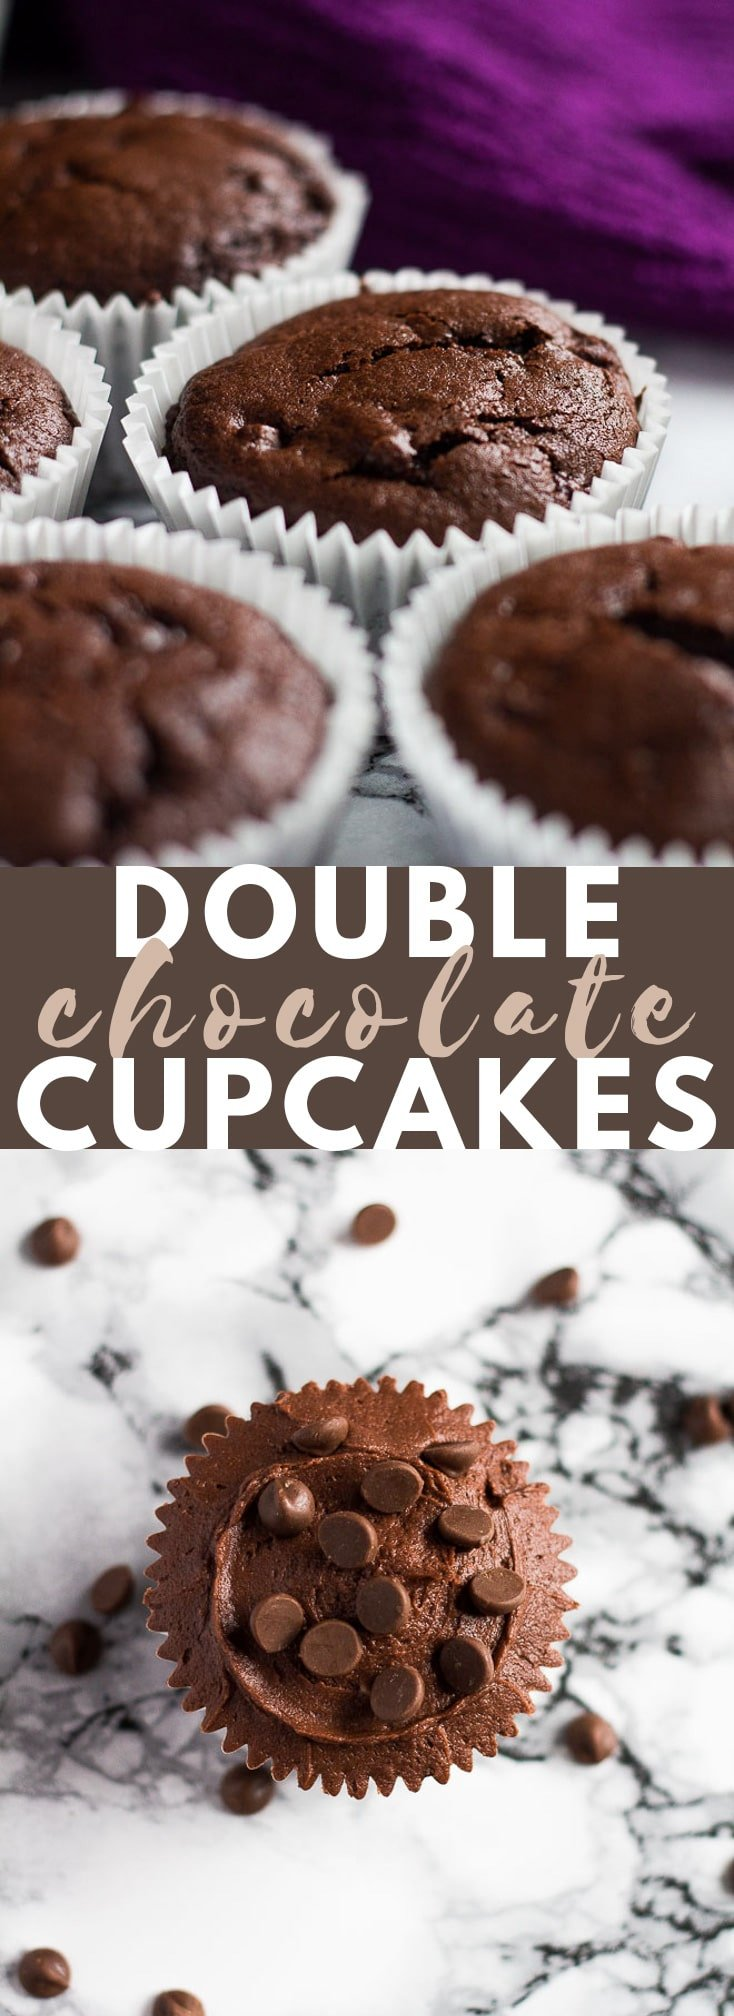 Double Chocolate Cupcakes - Deliciously moist and fluffy chocolate cupcakes stuffed with chocolate chips, and topped with a chocolate buttercream frosting! #chocolatecupcakes #cupcakerecipes #chocolaterecipes